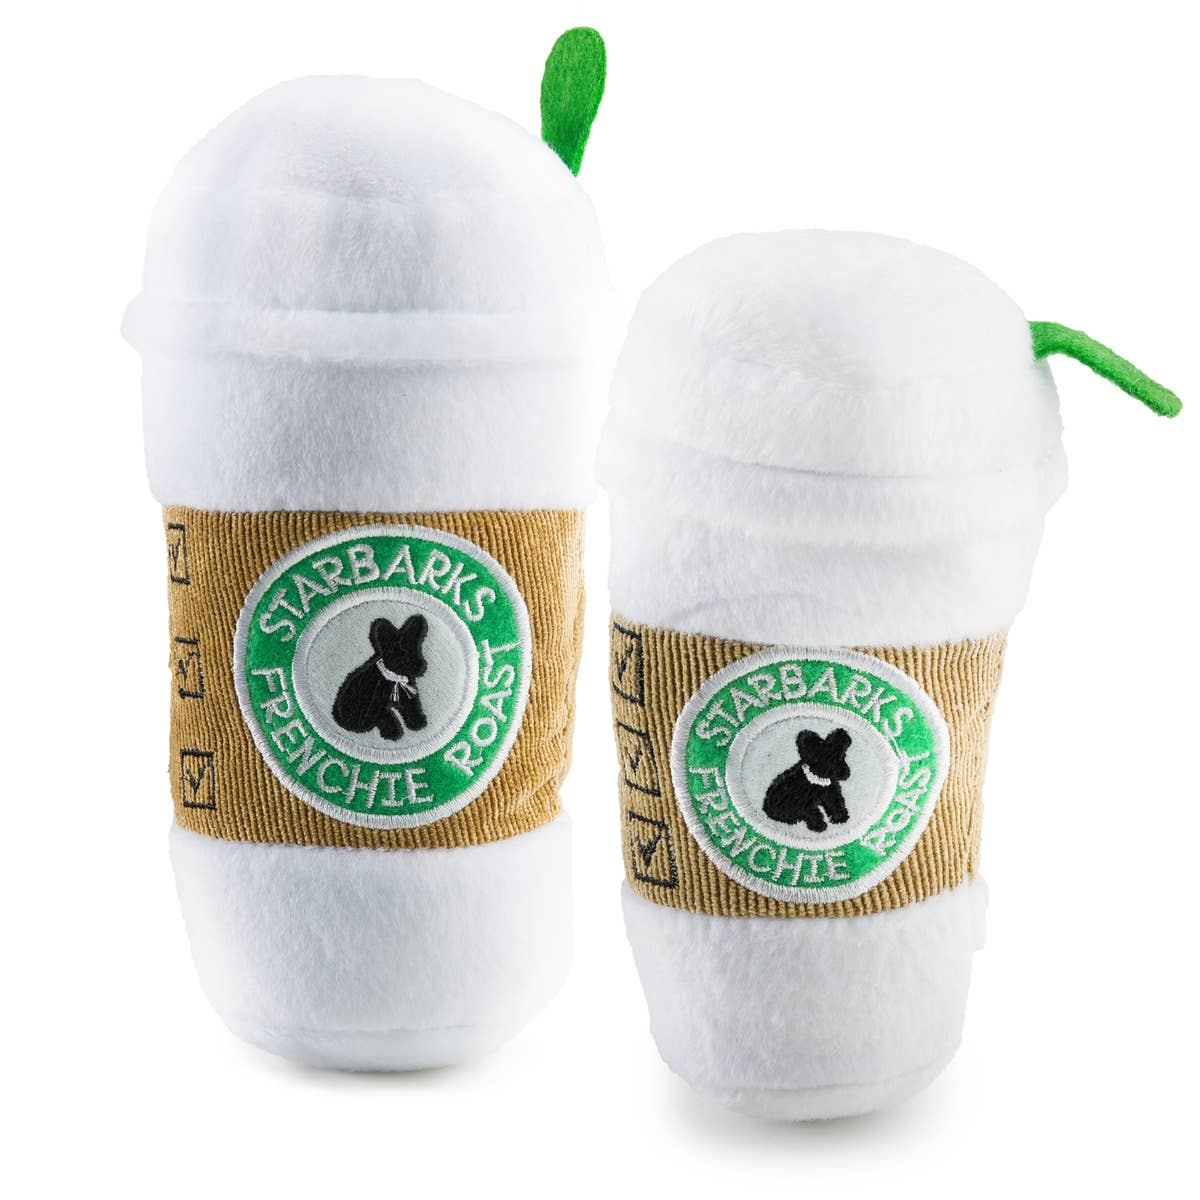 Starbarks Coffee Cup with Lid Dog Toy - Giften Market